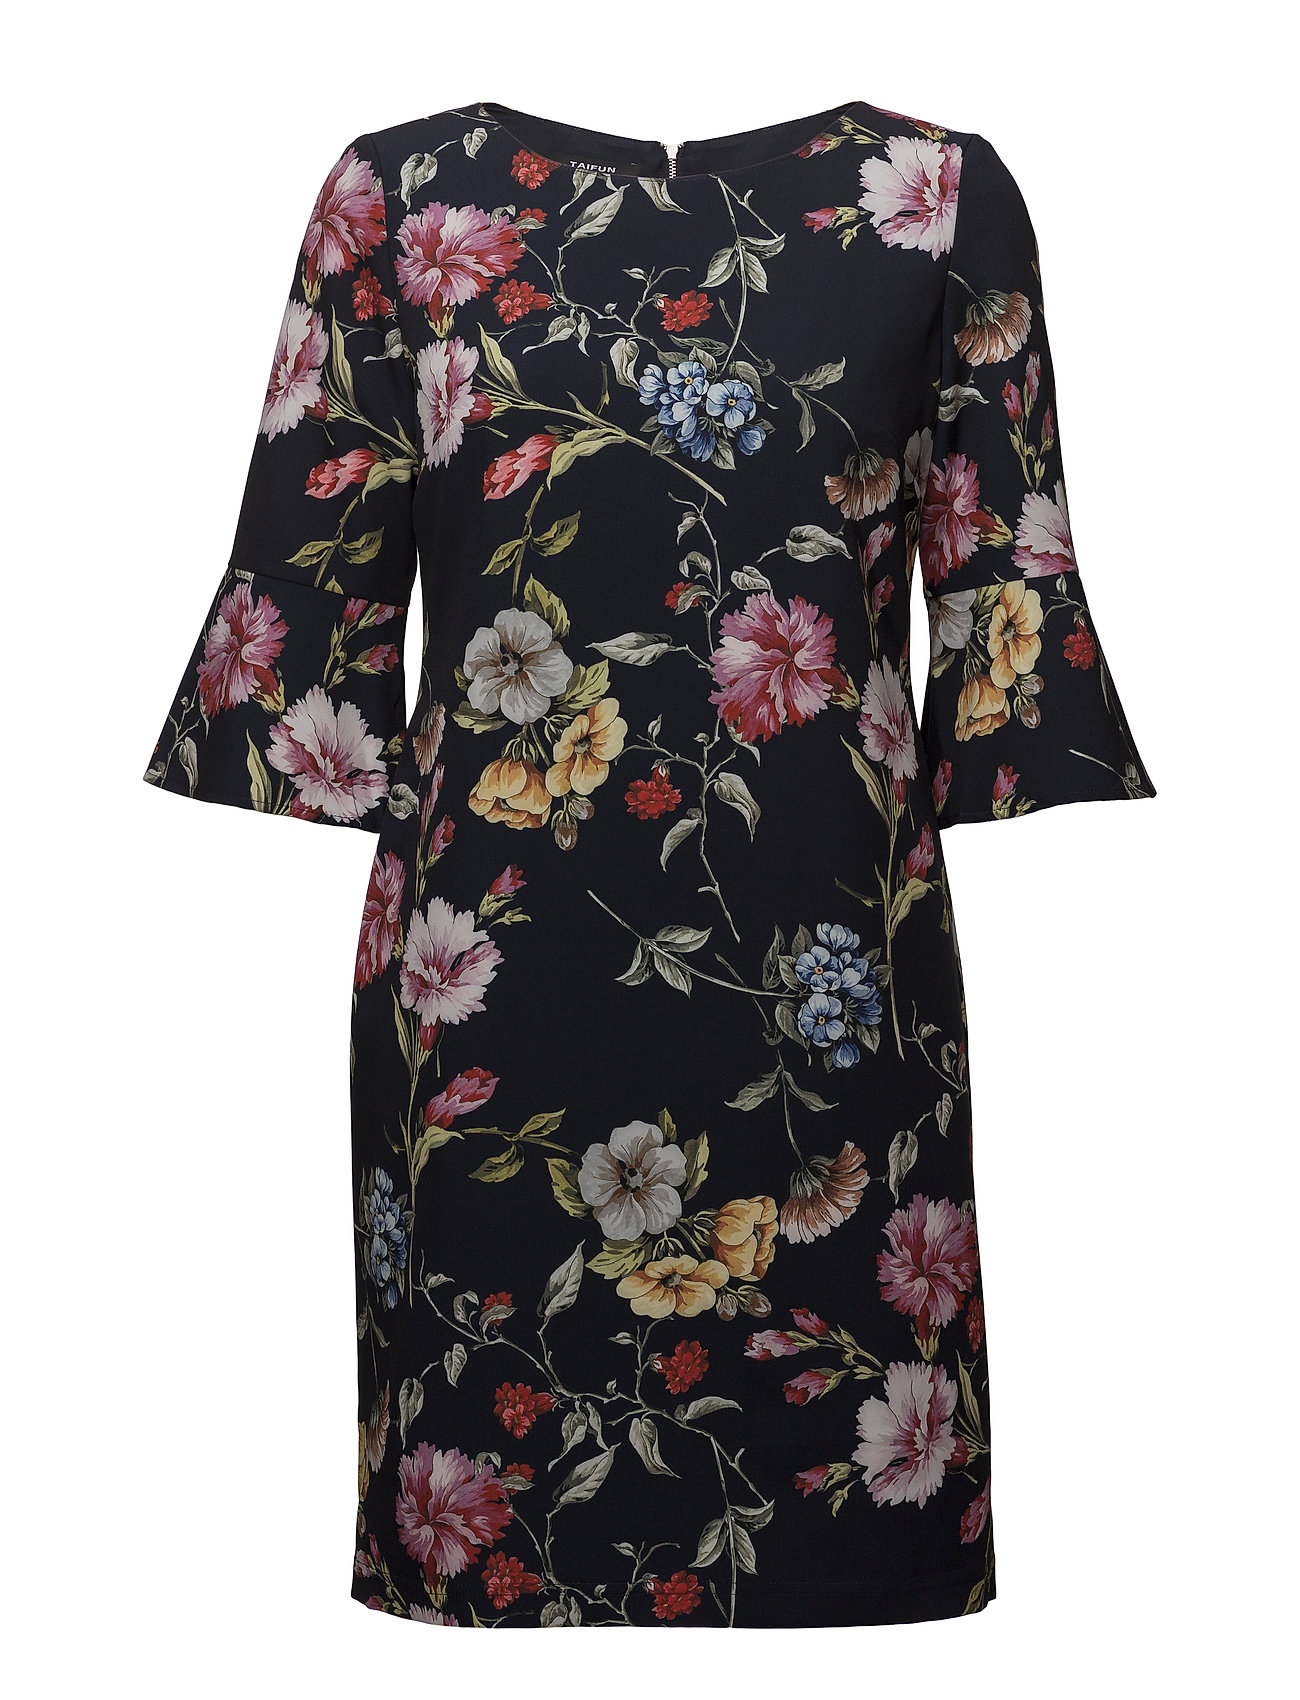 Taifun DRESS WOVEN FABRIC - INK PRINT